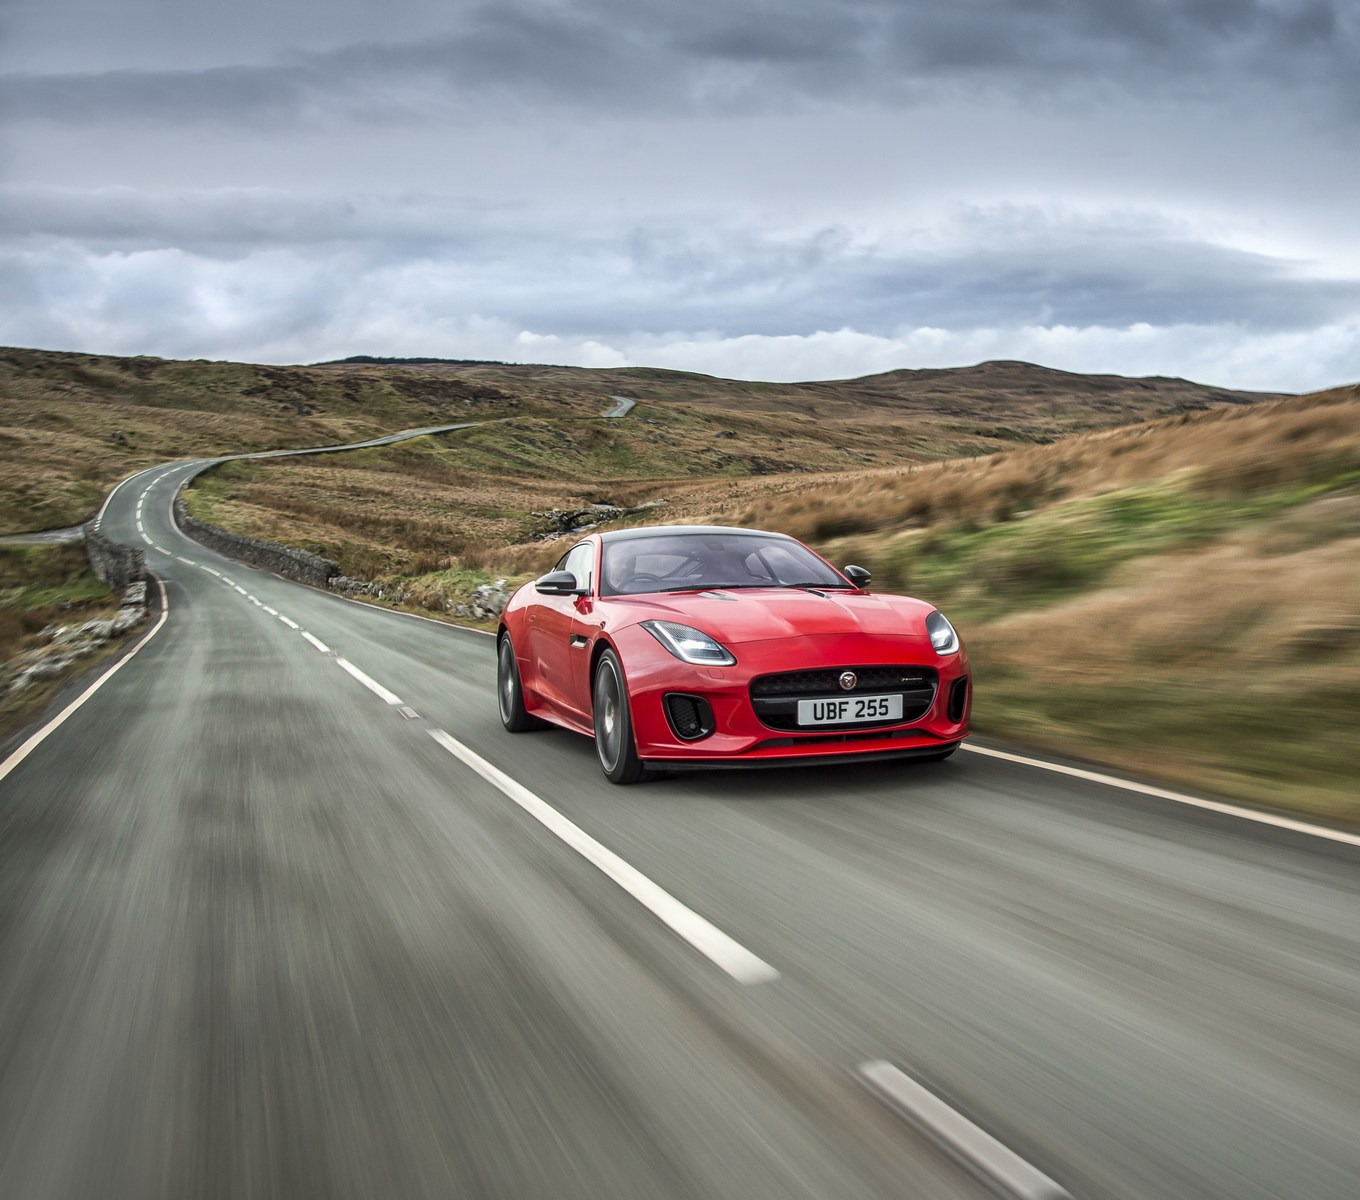 Jaguar Cars: Jaguar Committed To Sports Cars, F-Type Replacement To Be